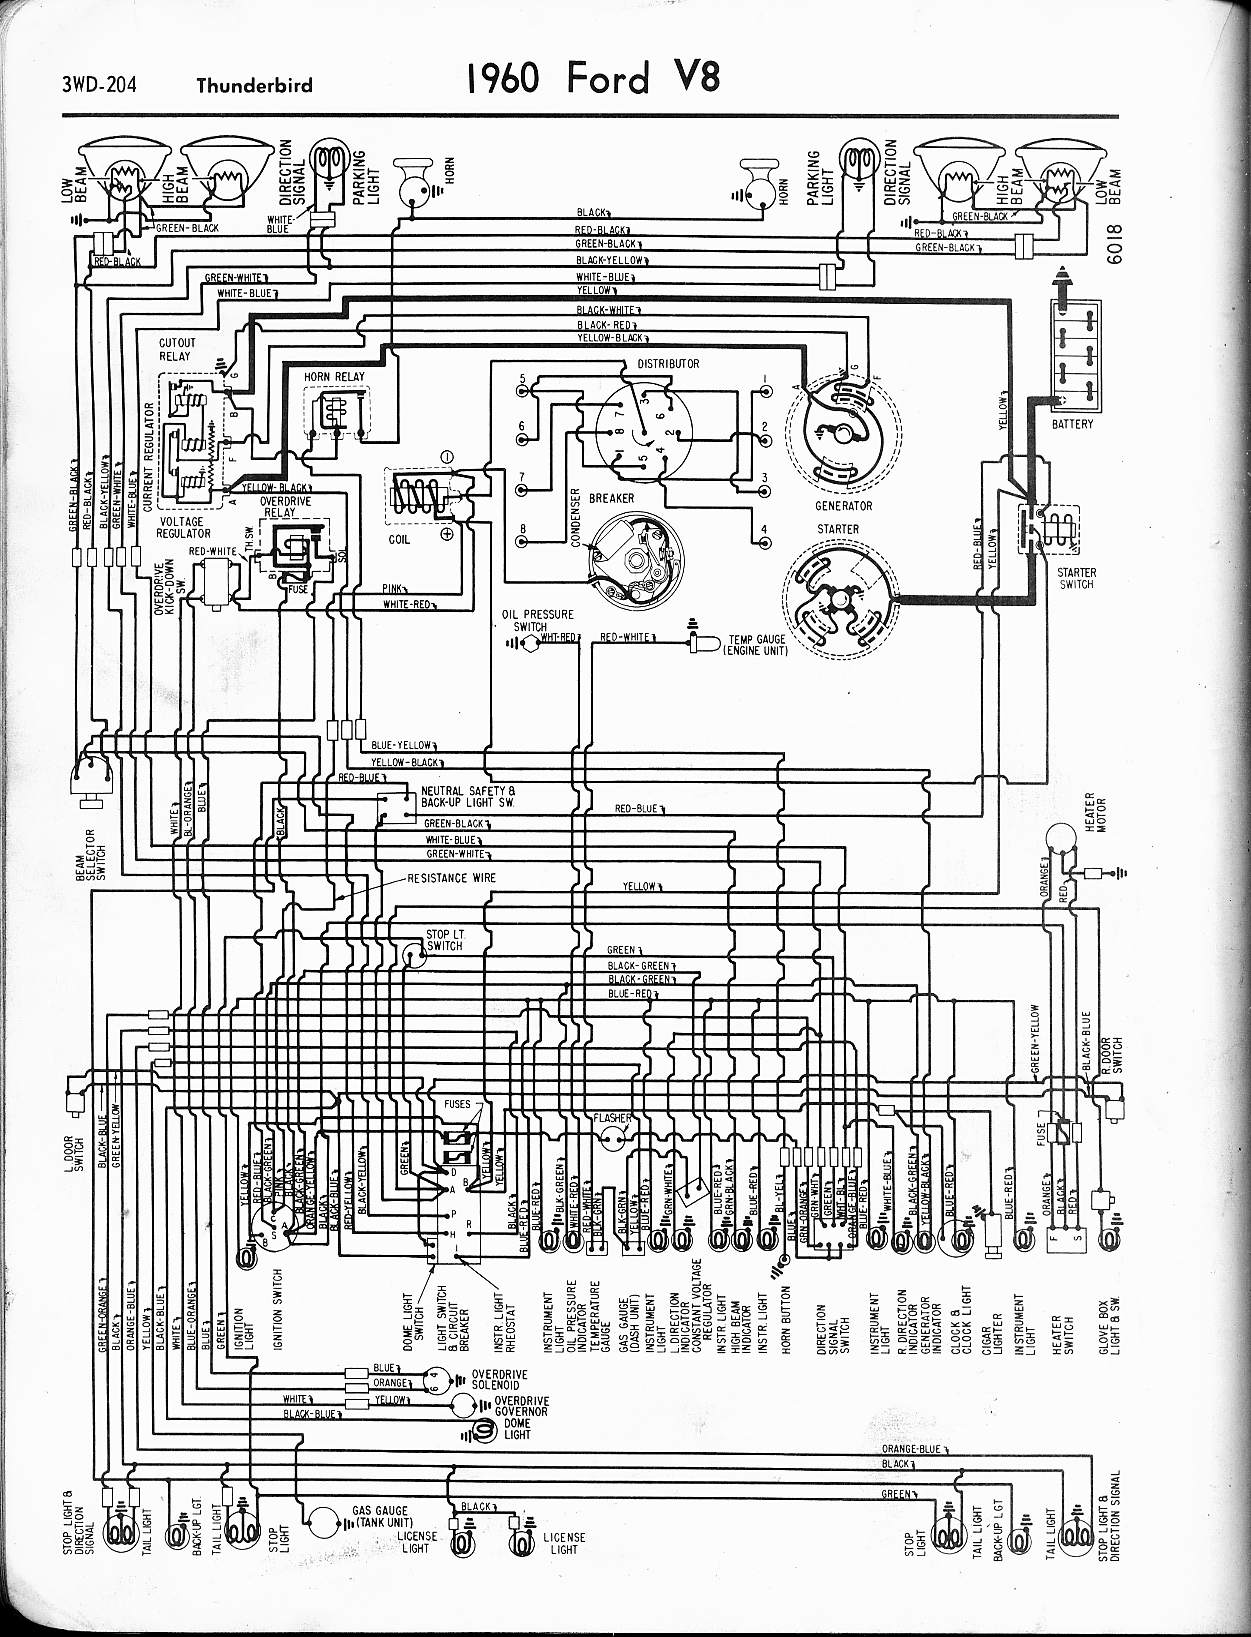 MWire5765 204 57 65 ford wiring diagrams 1955 thunderbird wiring diagram at crackthecode.co